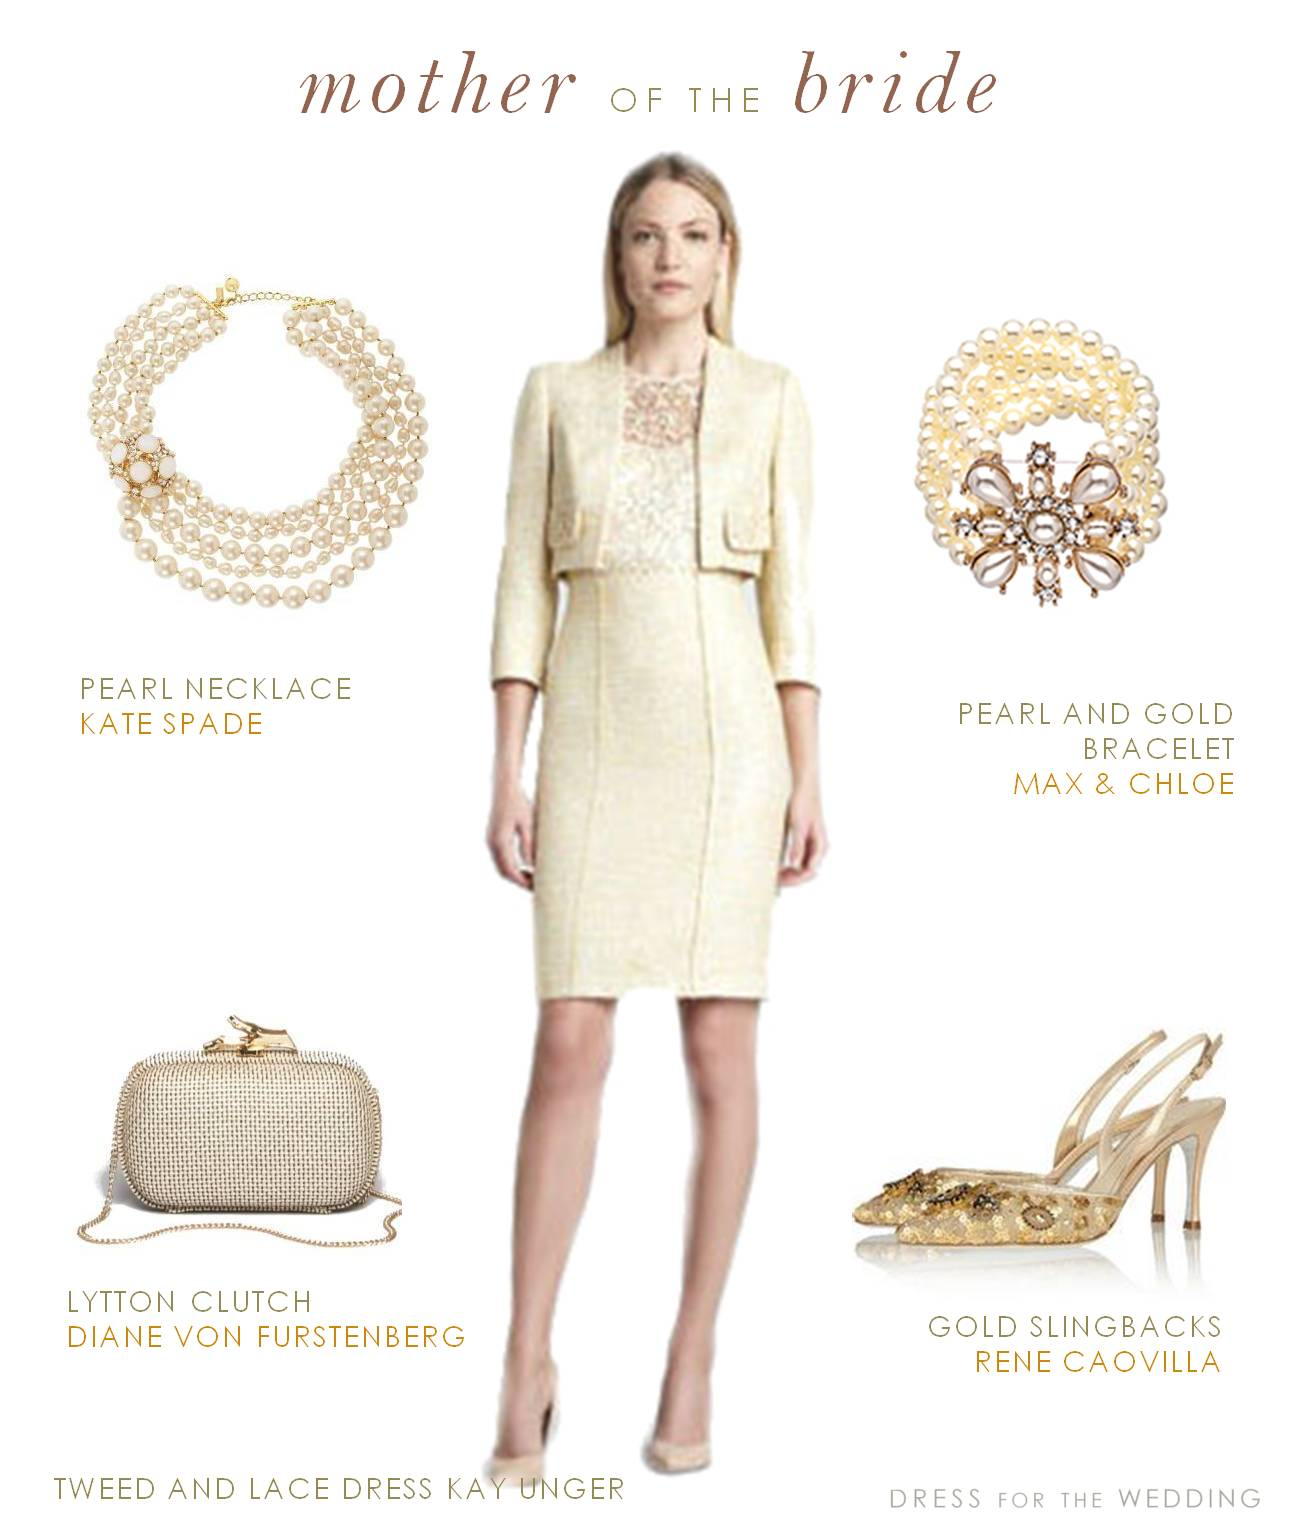 Pale Yellow Suit for the Mother of the Bride